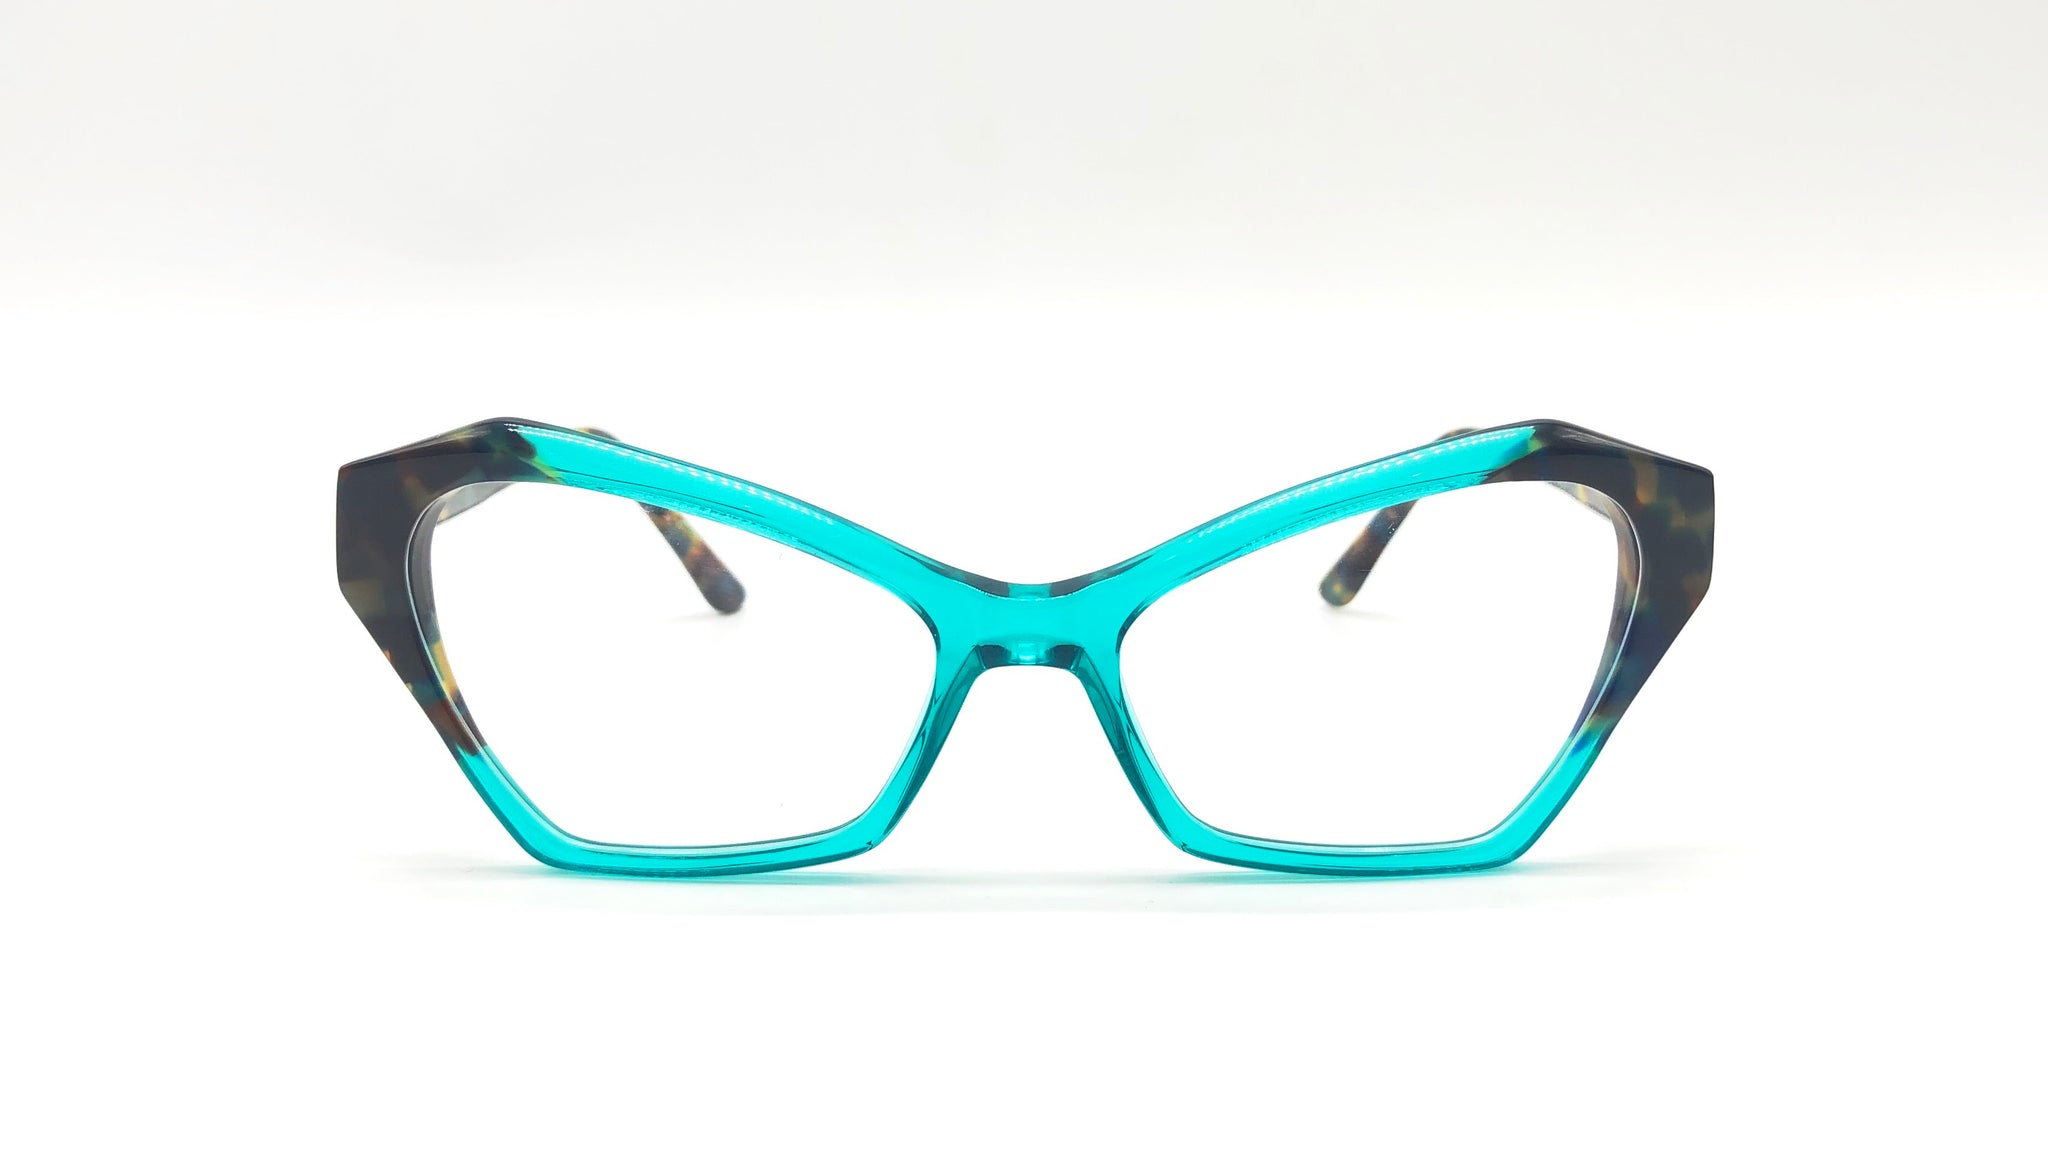 VANDA semi-transparent clear blue/tortoiseshell temples cat eye eyeglasses